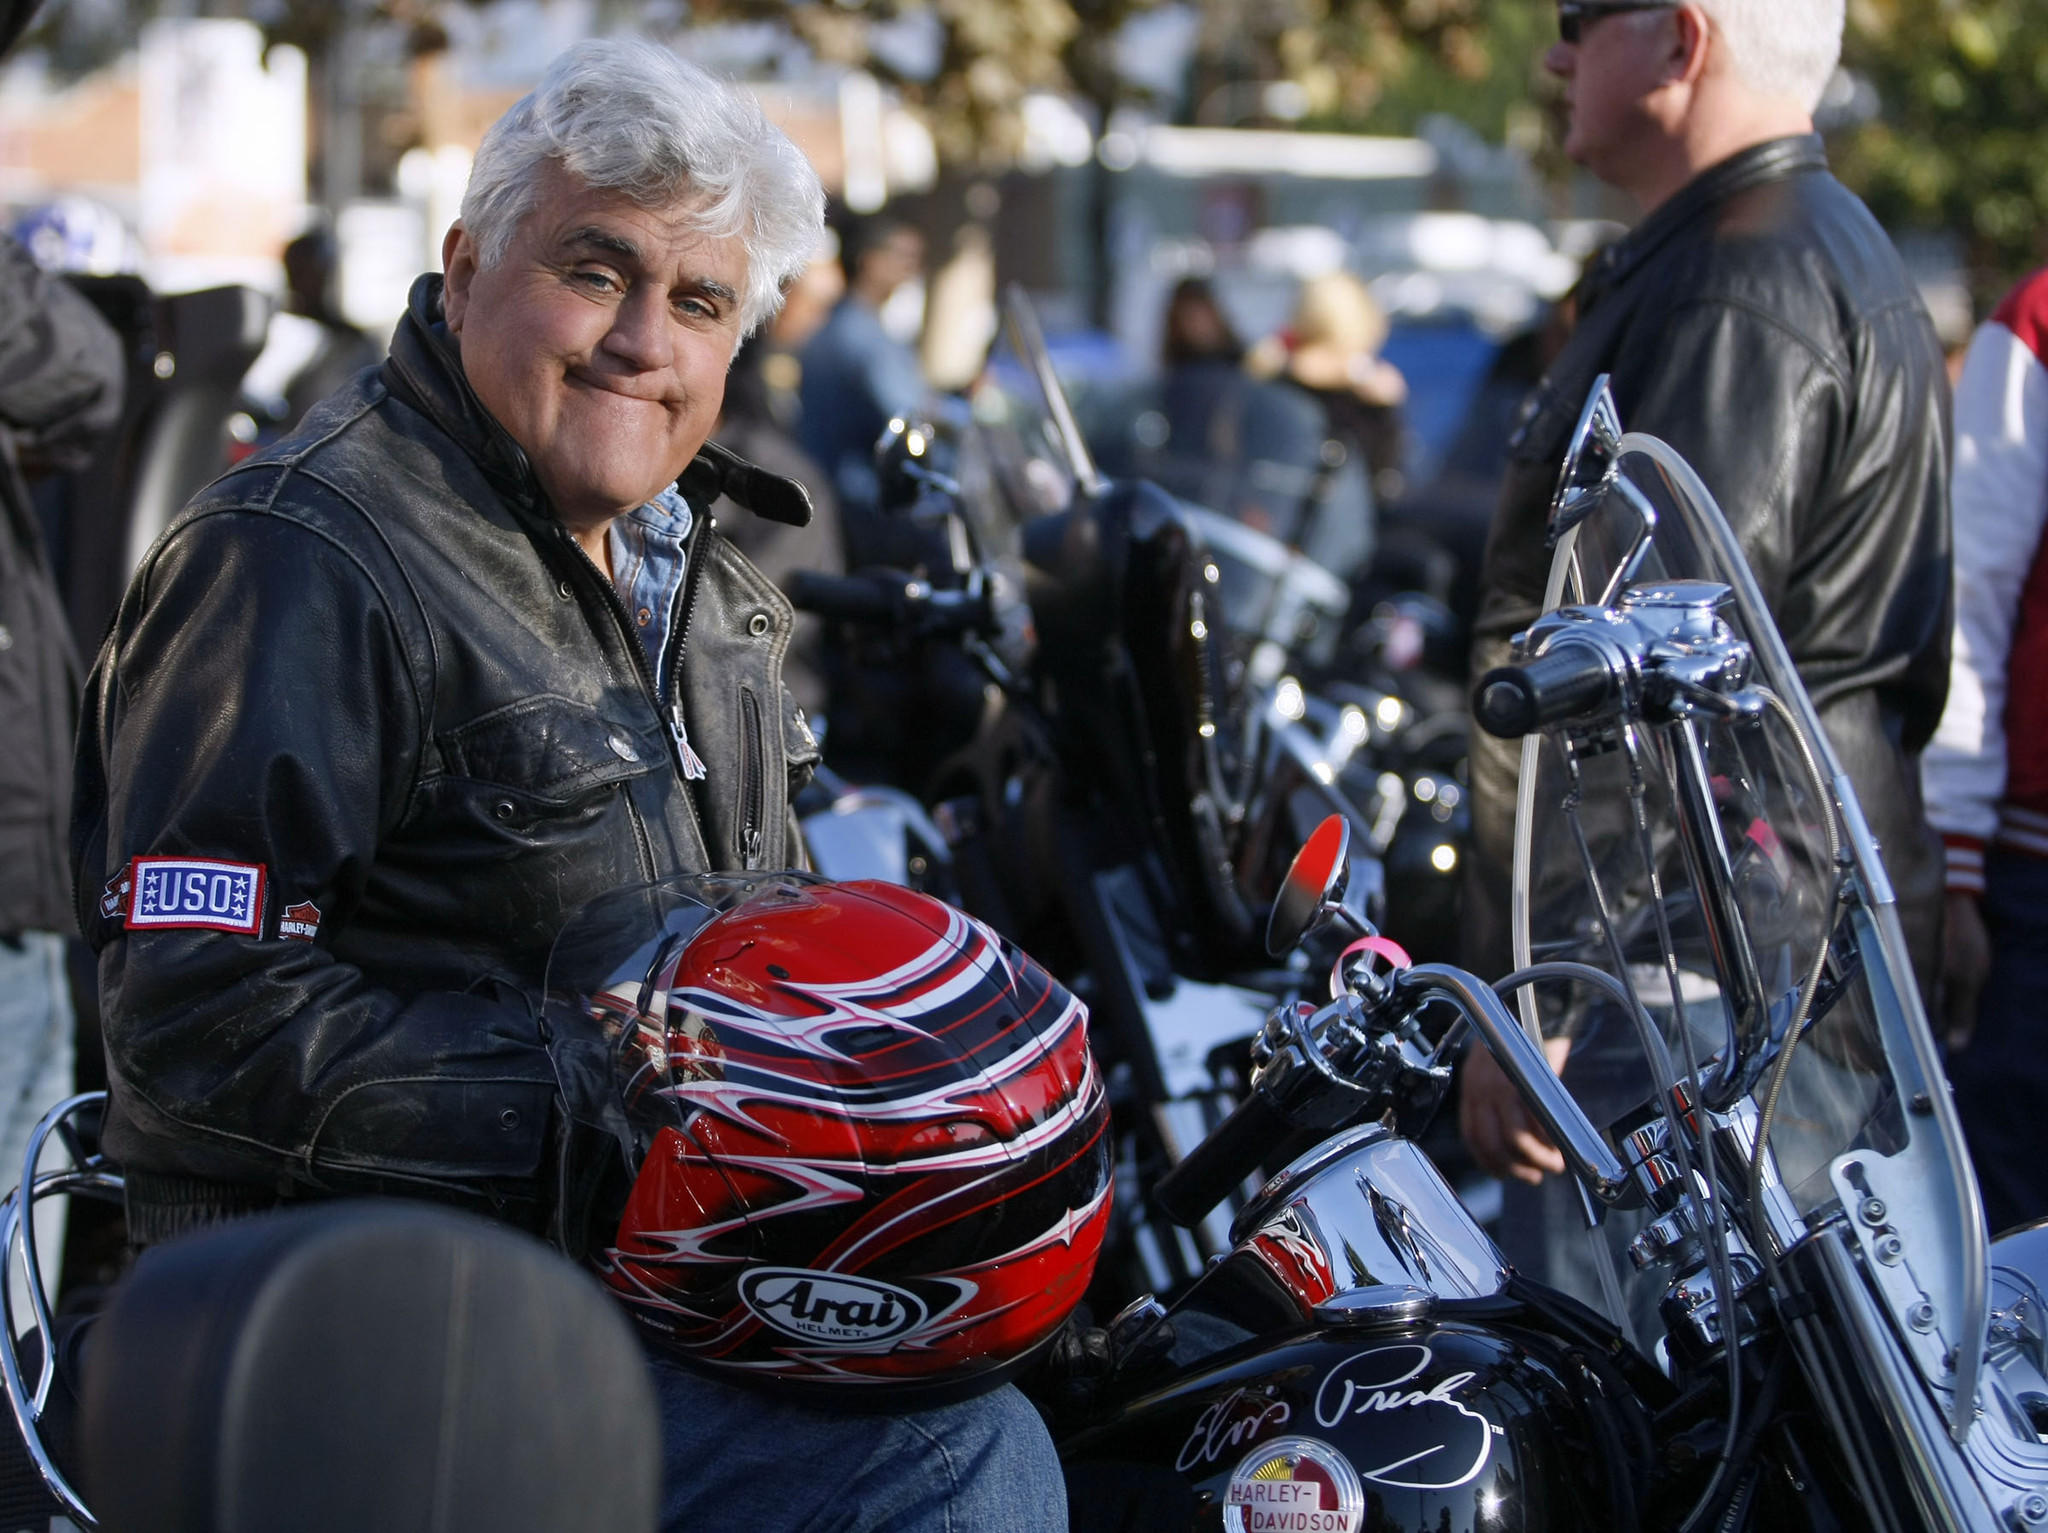 Comedian Jay Leno at Harley Davidson Motorcycles in Glendale just before the 30th annual Love Ride on Sunday, Oct. 20, 2013. The ride, a fundraiser for the USO and its programs, goes from the Glendale store to Castaic Lake.